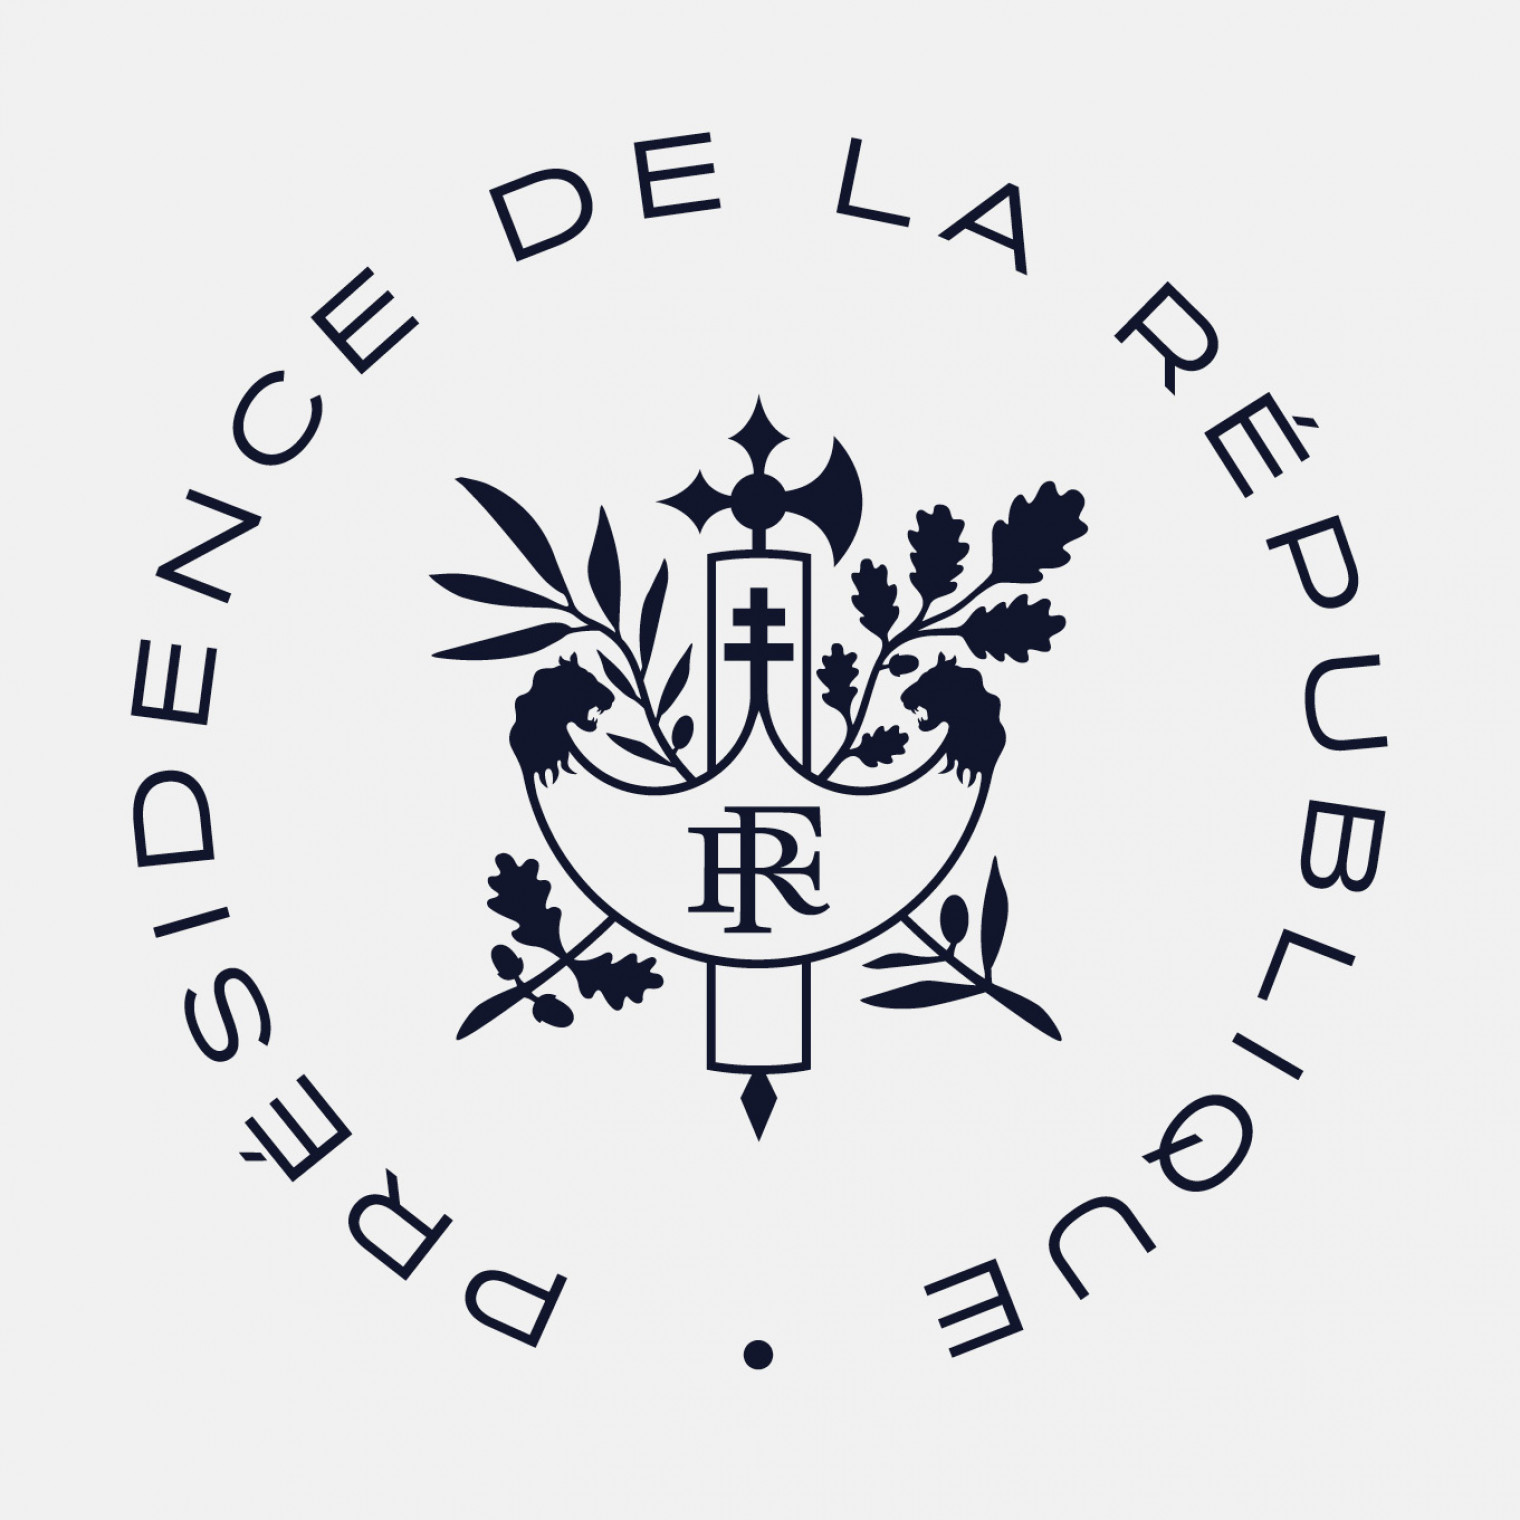 The cross of Lorraine in the lictor's fasces, coat of arms of the French Republic.